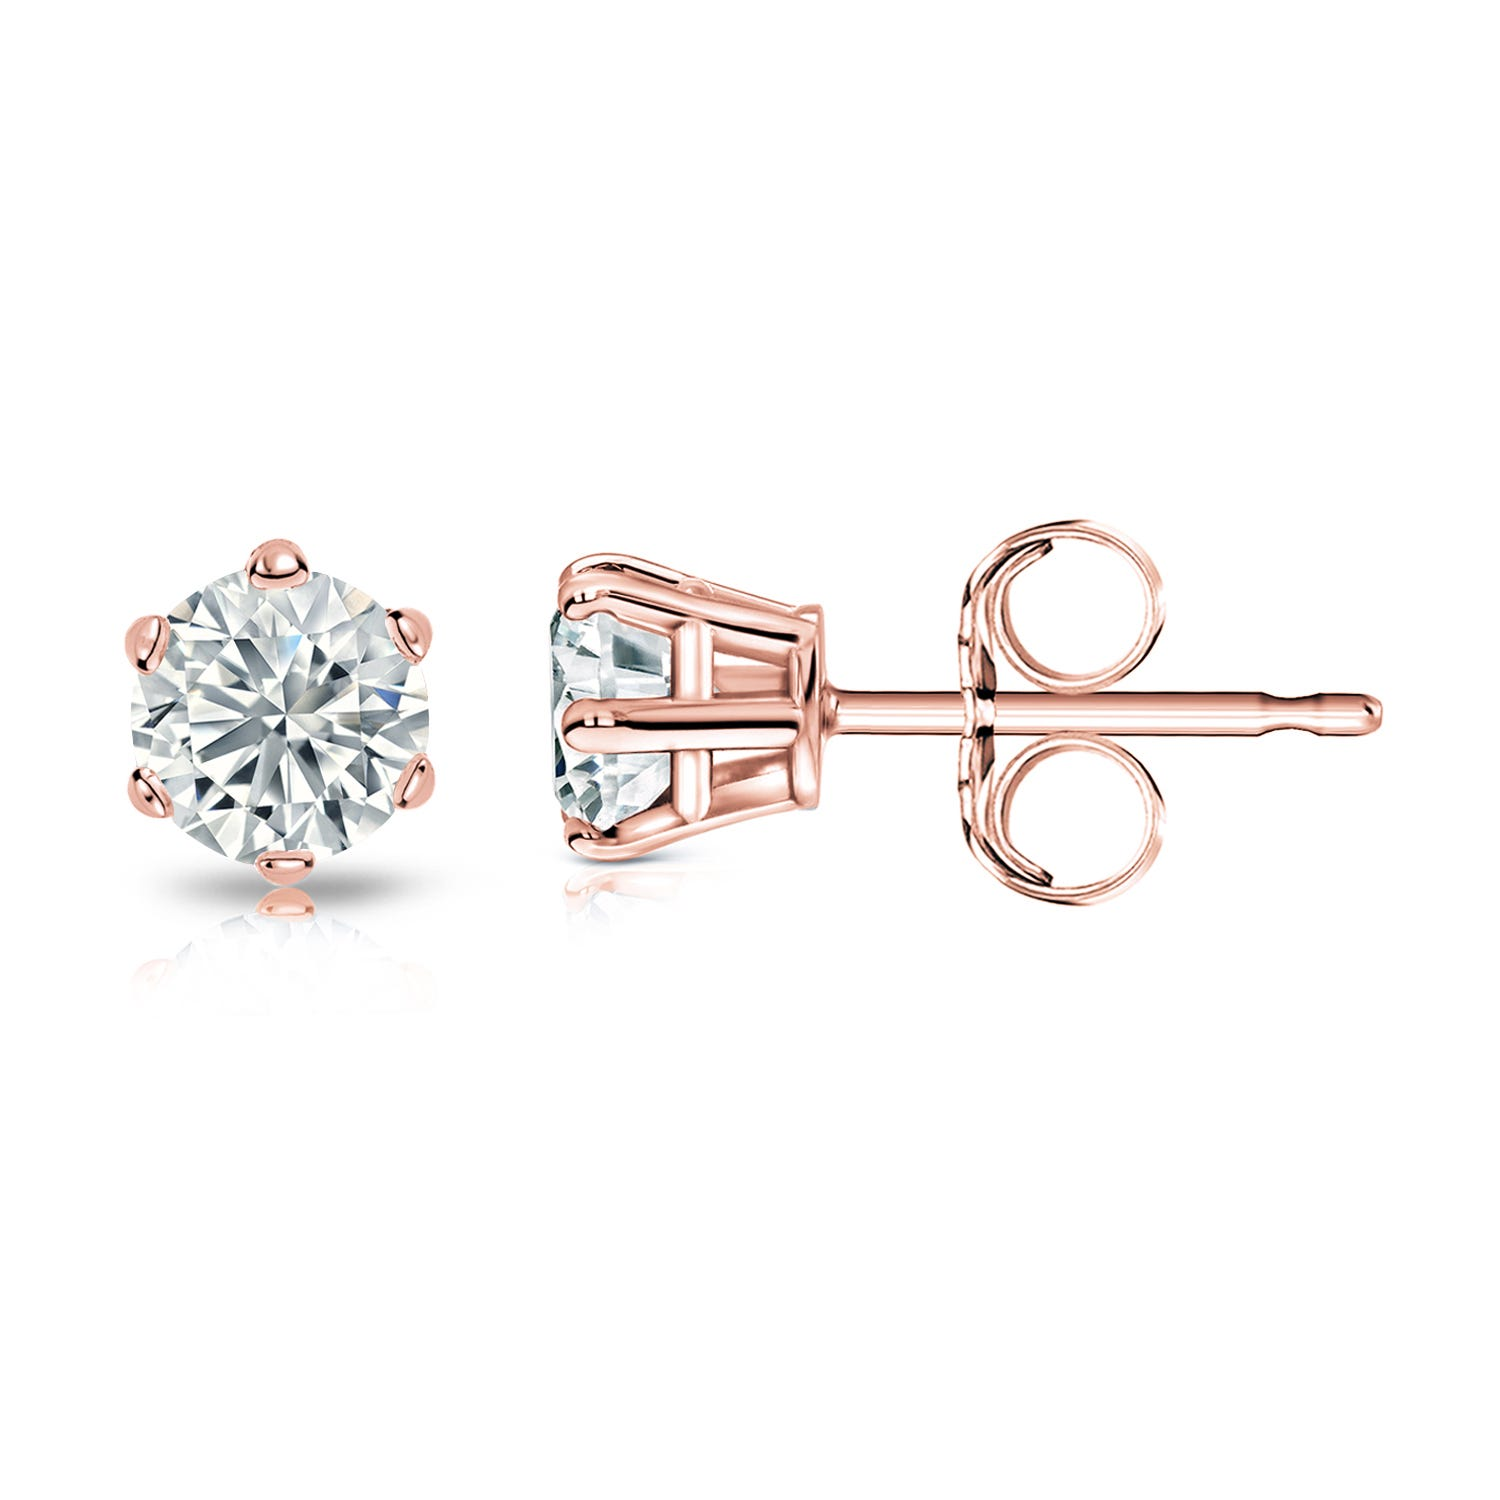 Round Diamond 1/2ctw. (IJ-VS2) Solitaire Stud 6-Prong Earrings in 14K Rose Gold